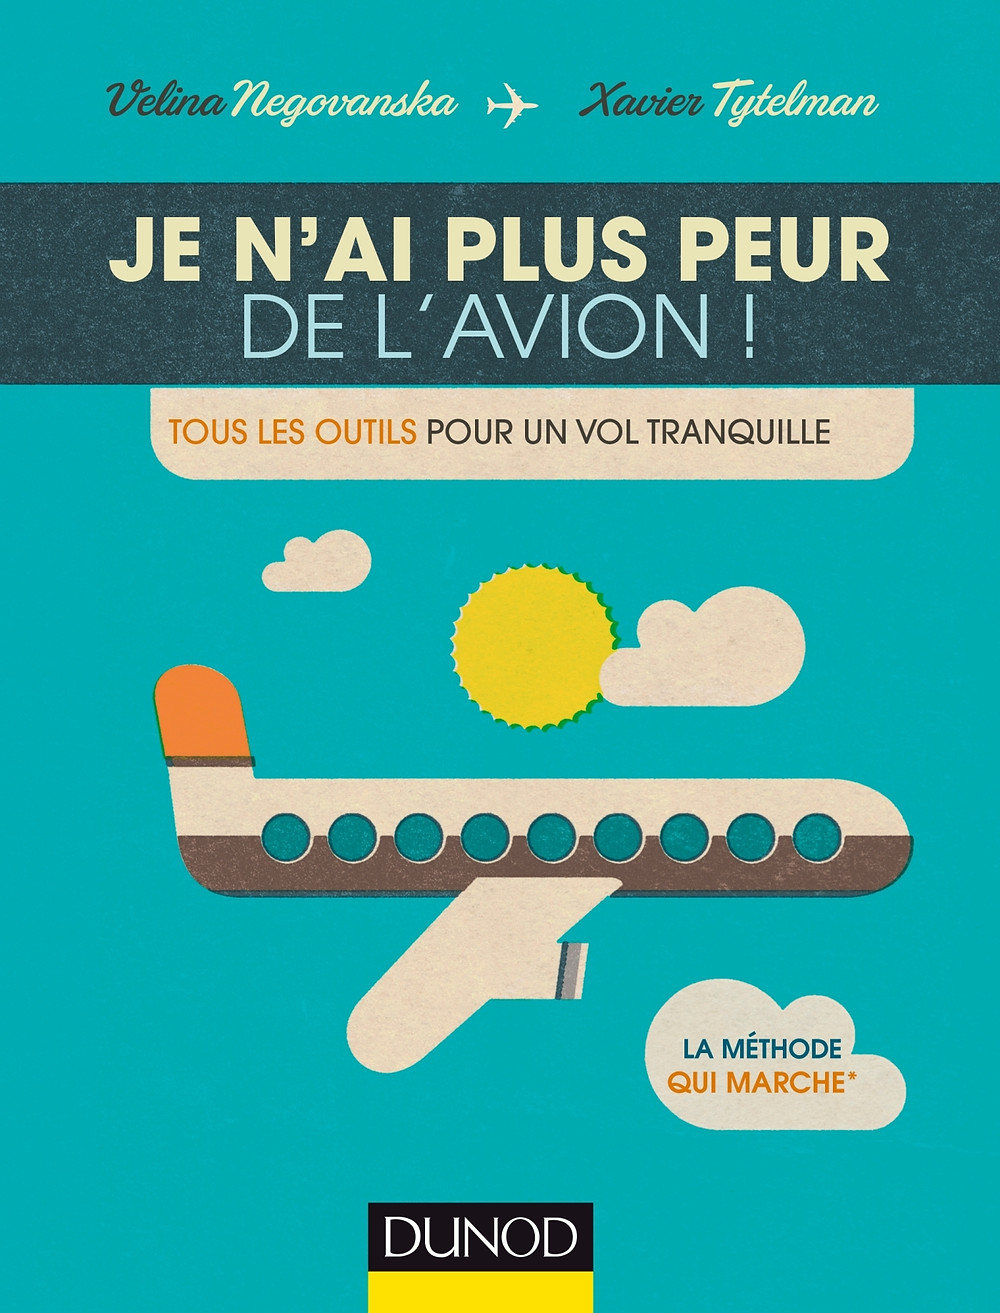 je n'ai plus peur en avion